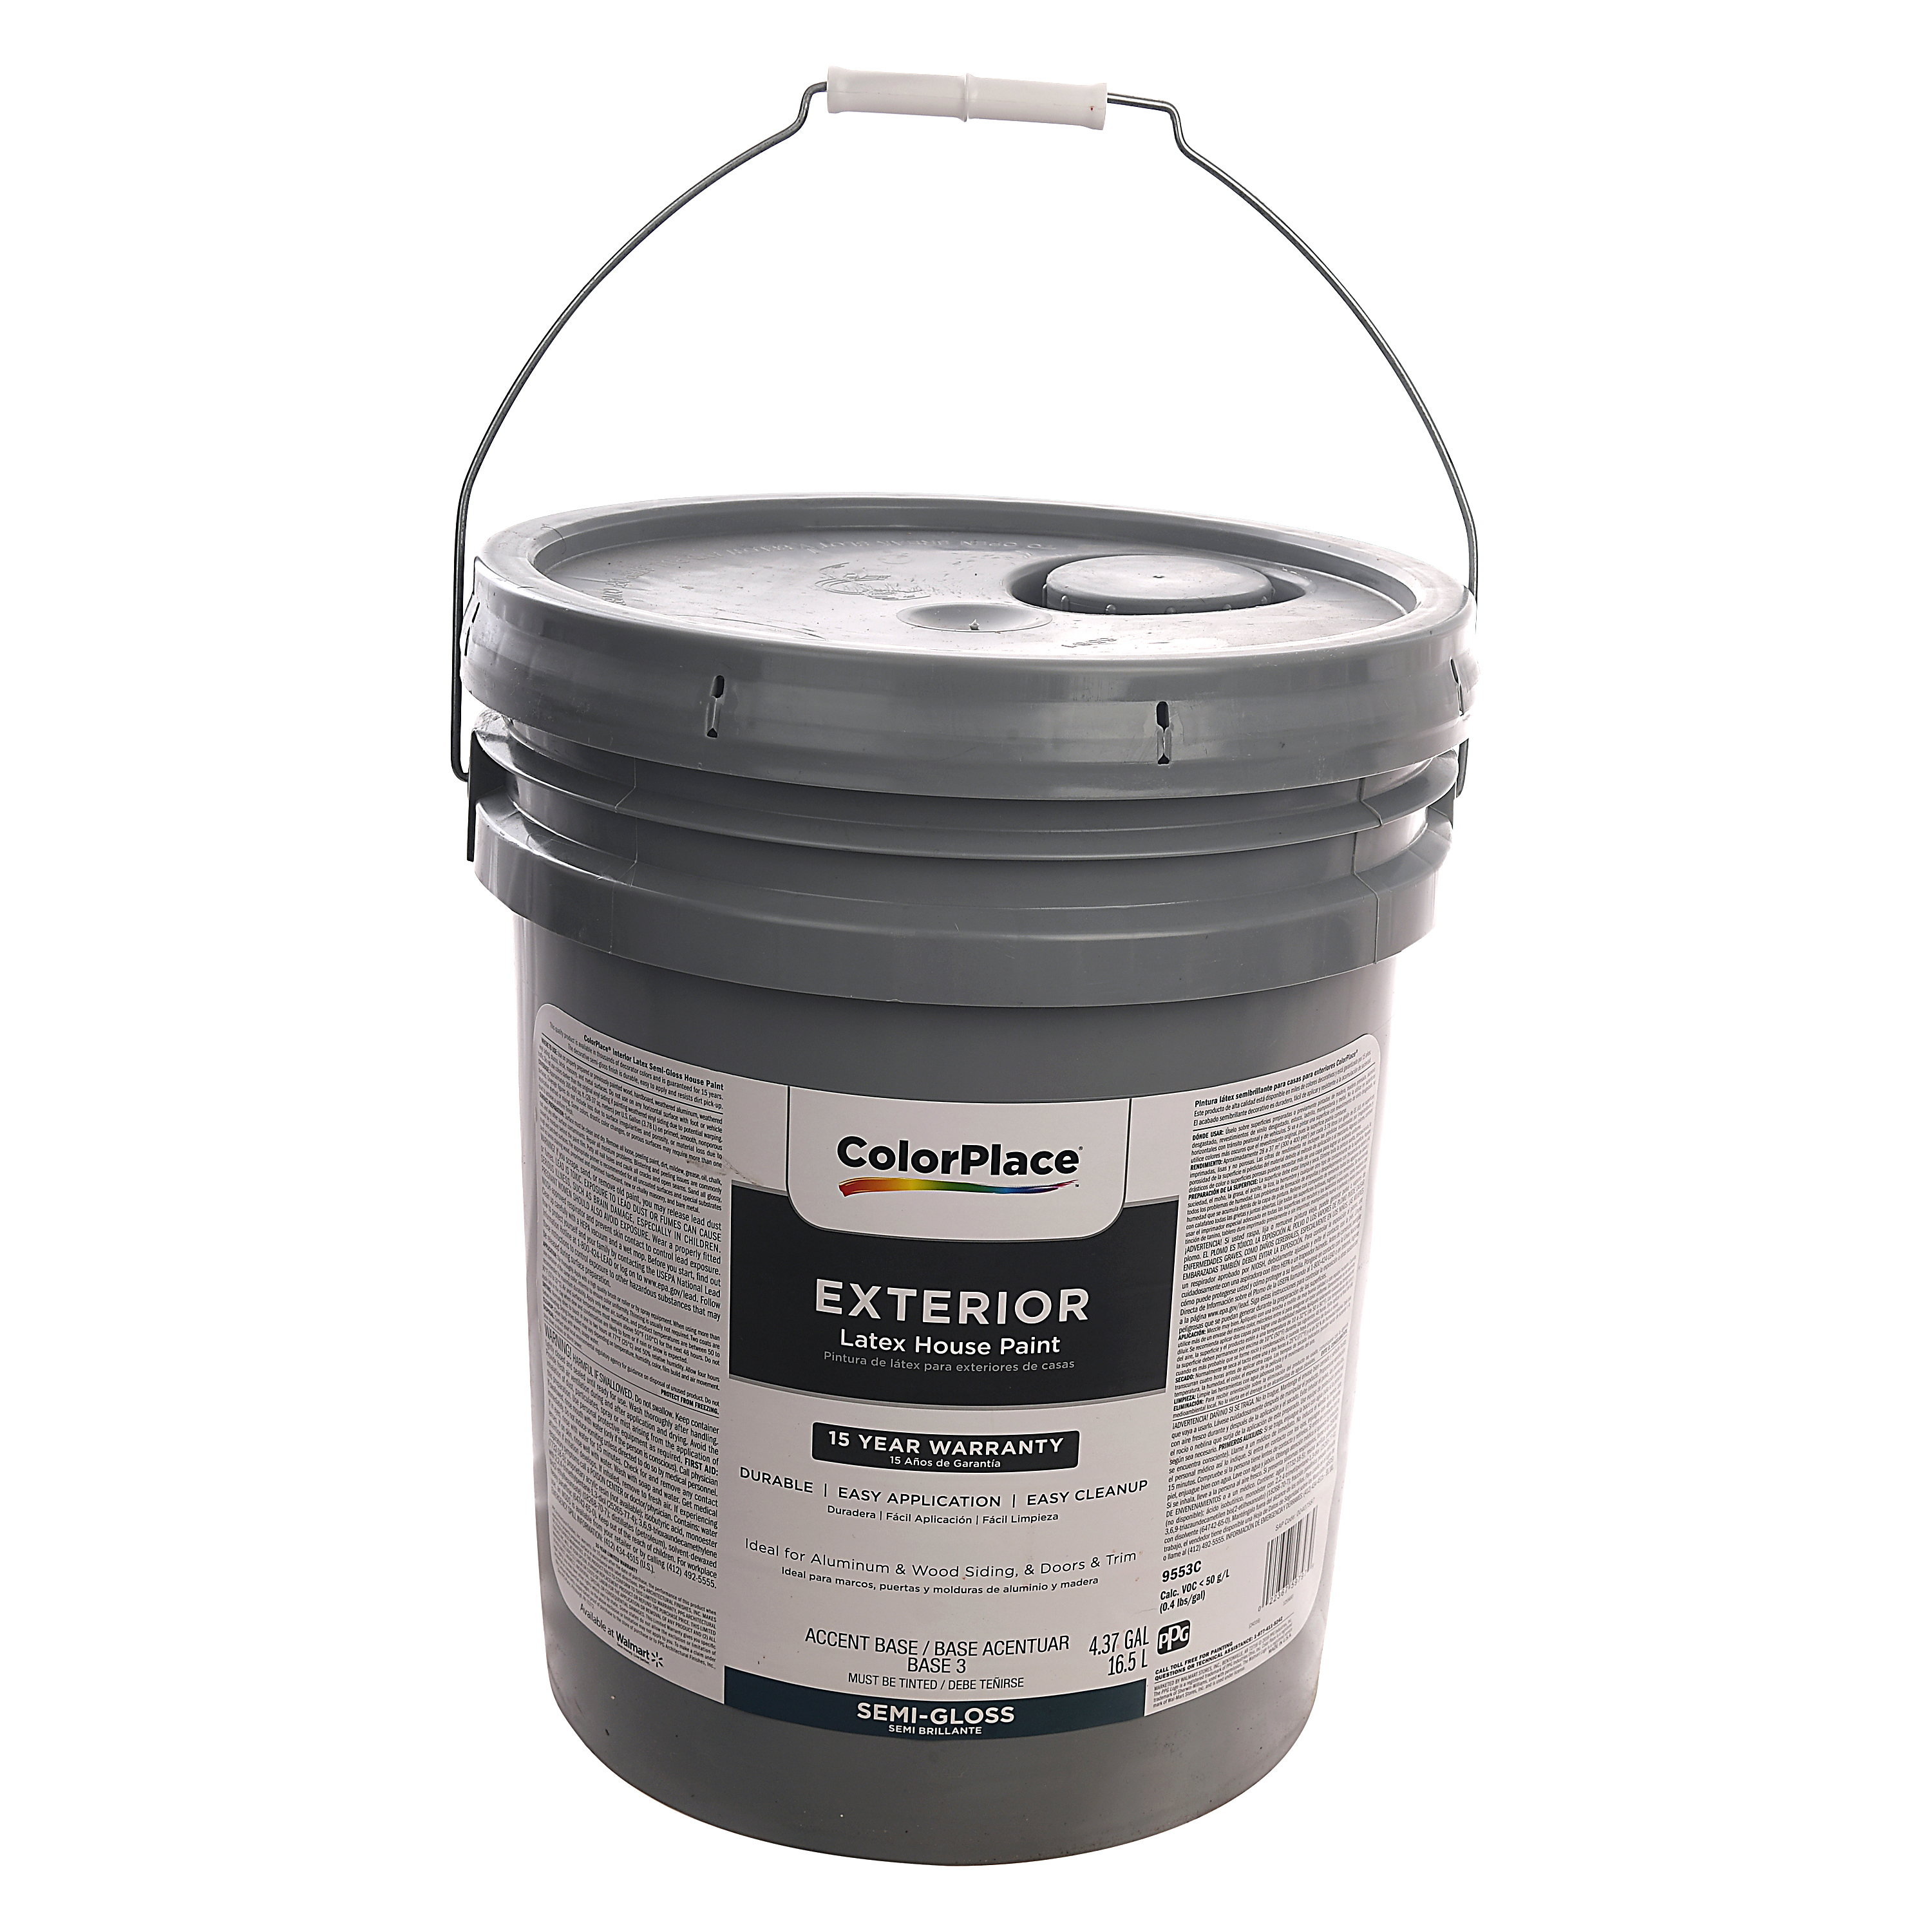 colorplace exterior latex house paint 5 gallon semi gloss walmart inventory checker brickseek. Black Bedroom Furniture Sets. Home Design Ideas